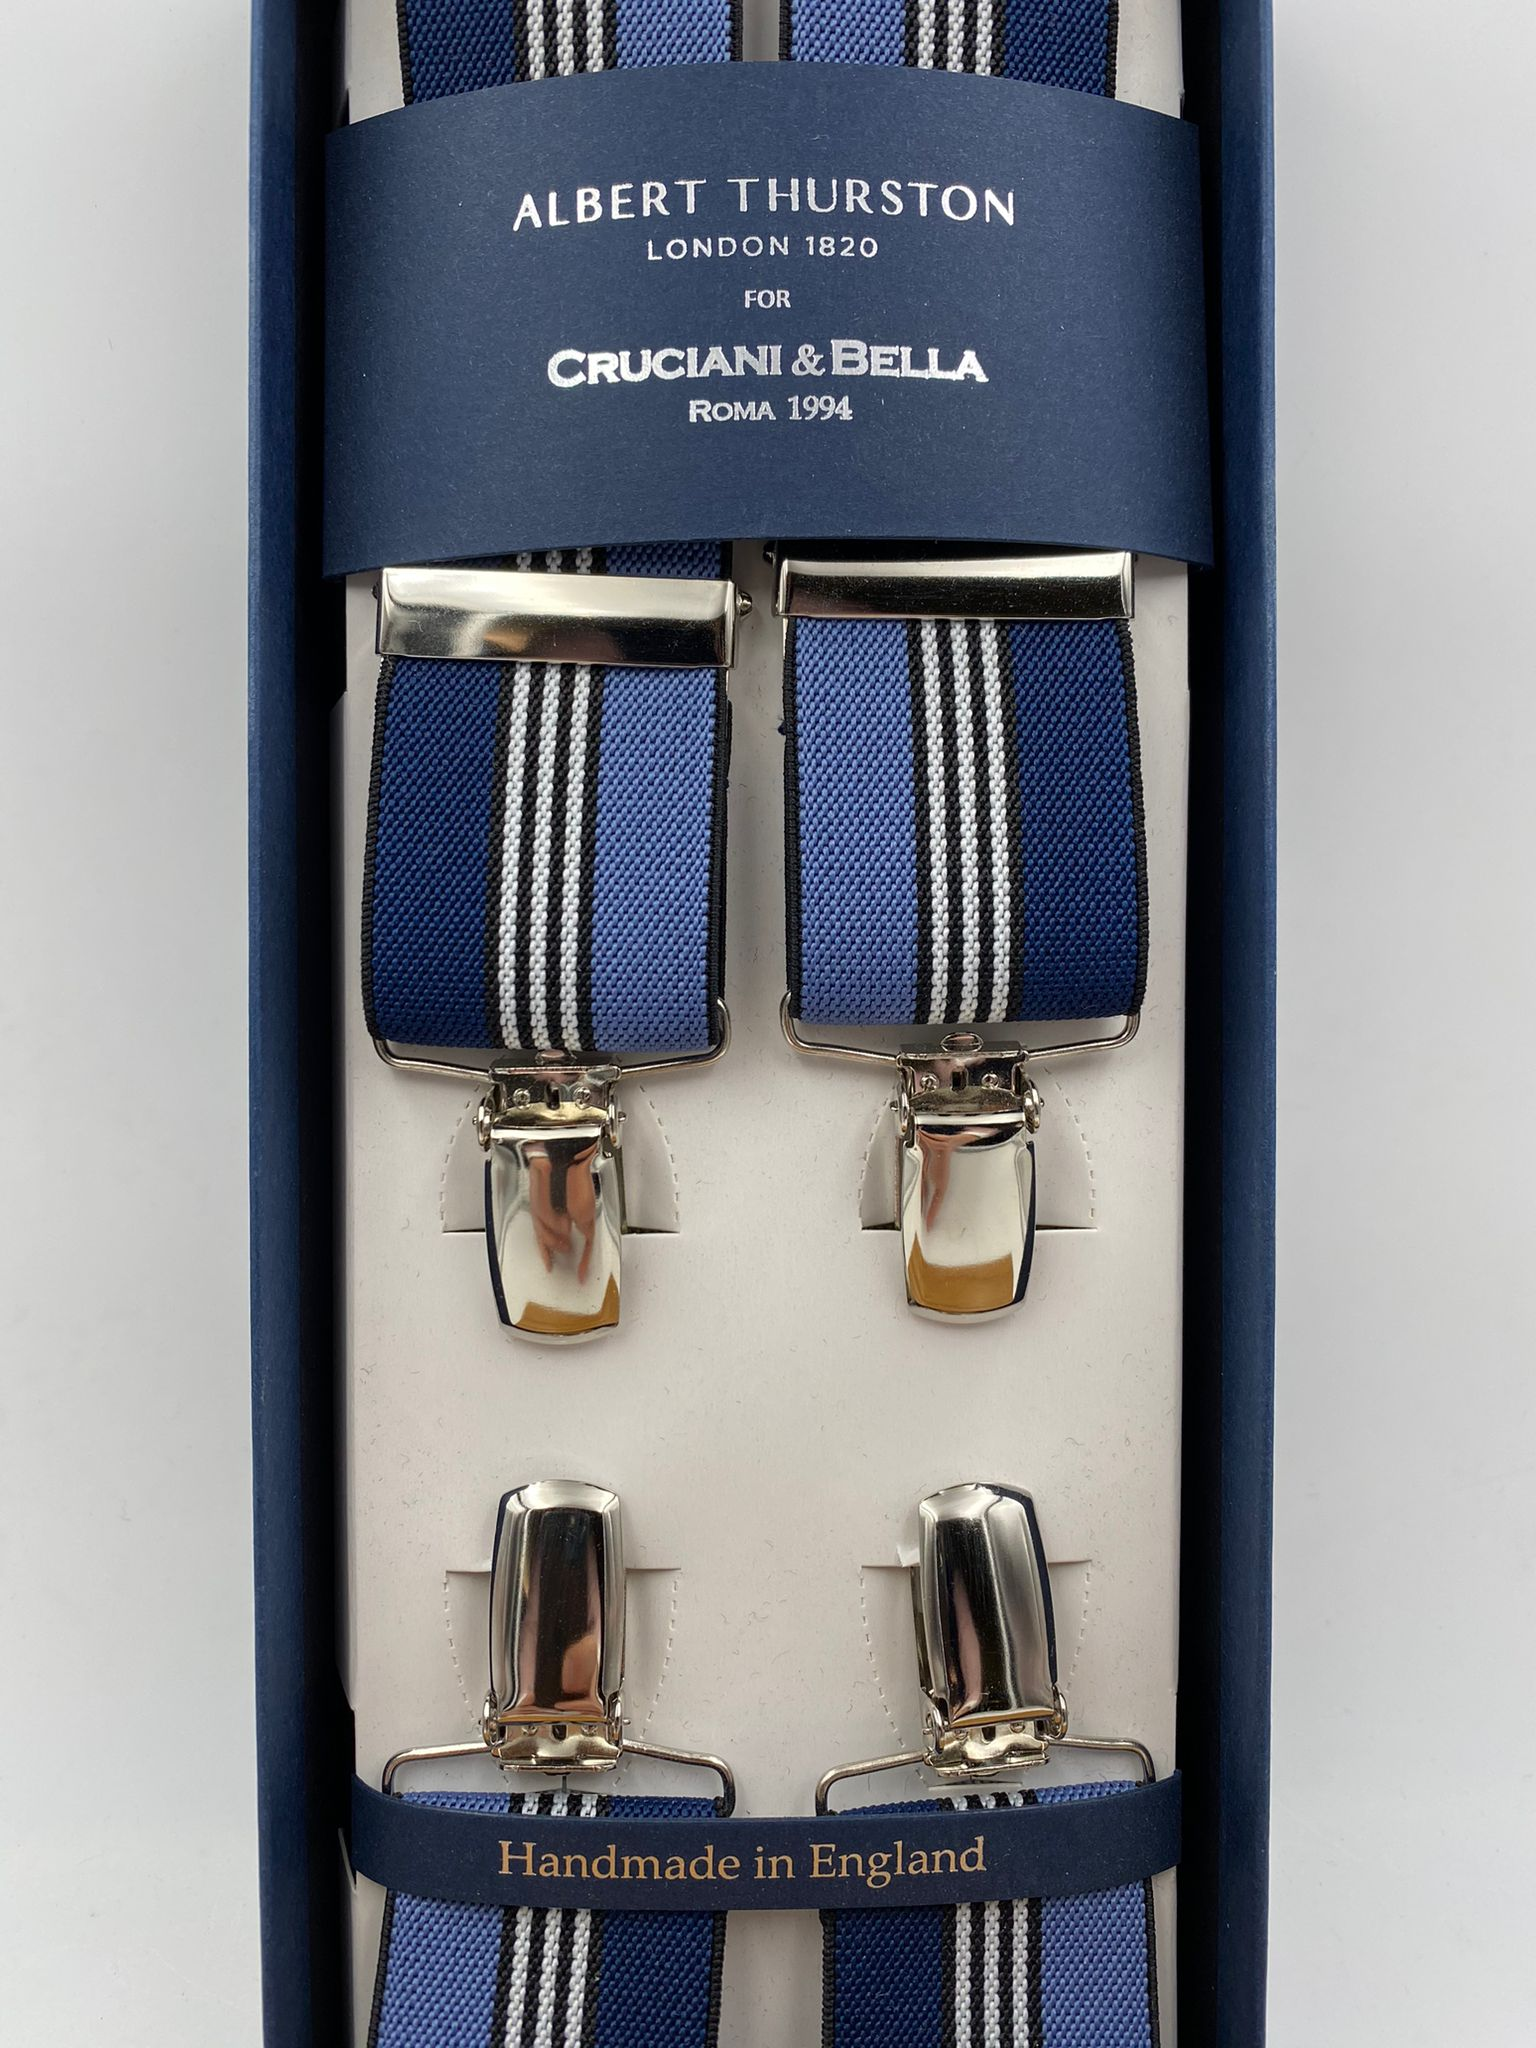 Albert Thurston for Cruciani & Bella Made in England Clip on Adjustable Sizing 35 mm elastic braces Blue, Sky and White Stripe X-Shaped Nickel Fittings Size: L #4806